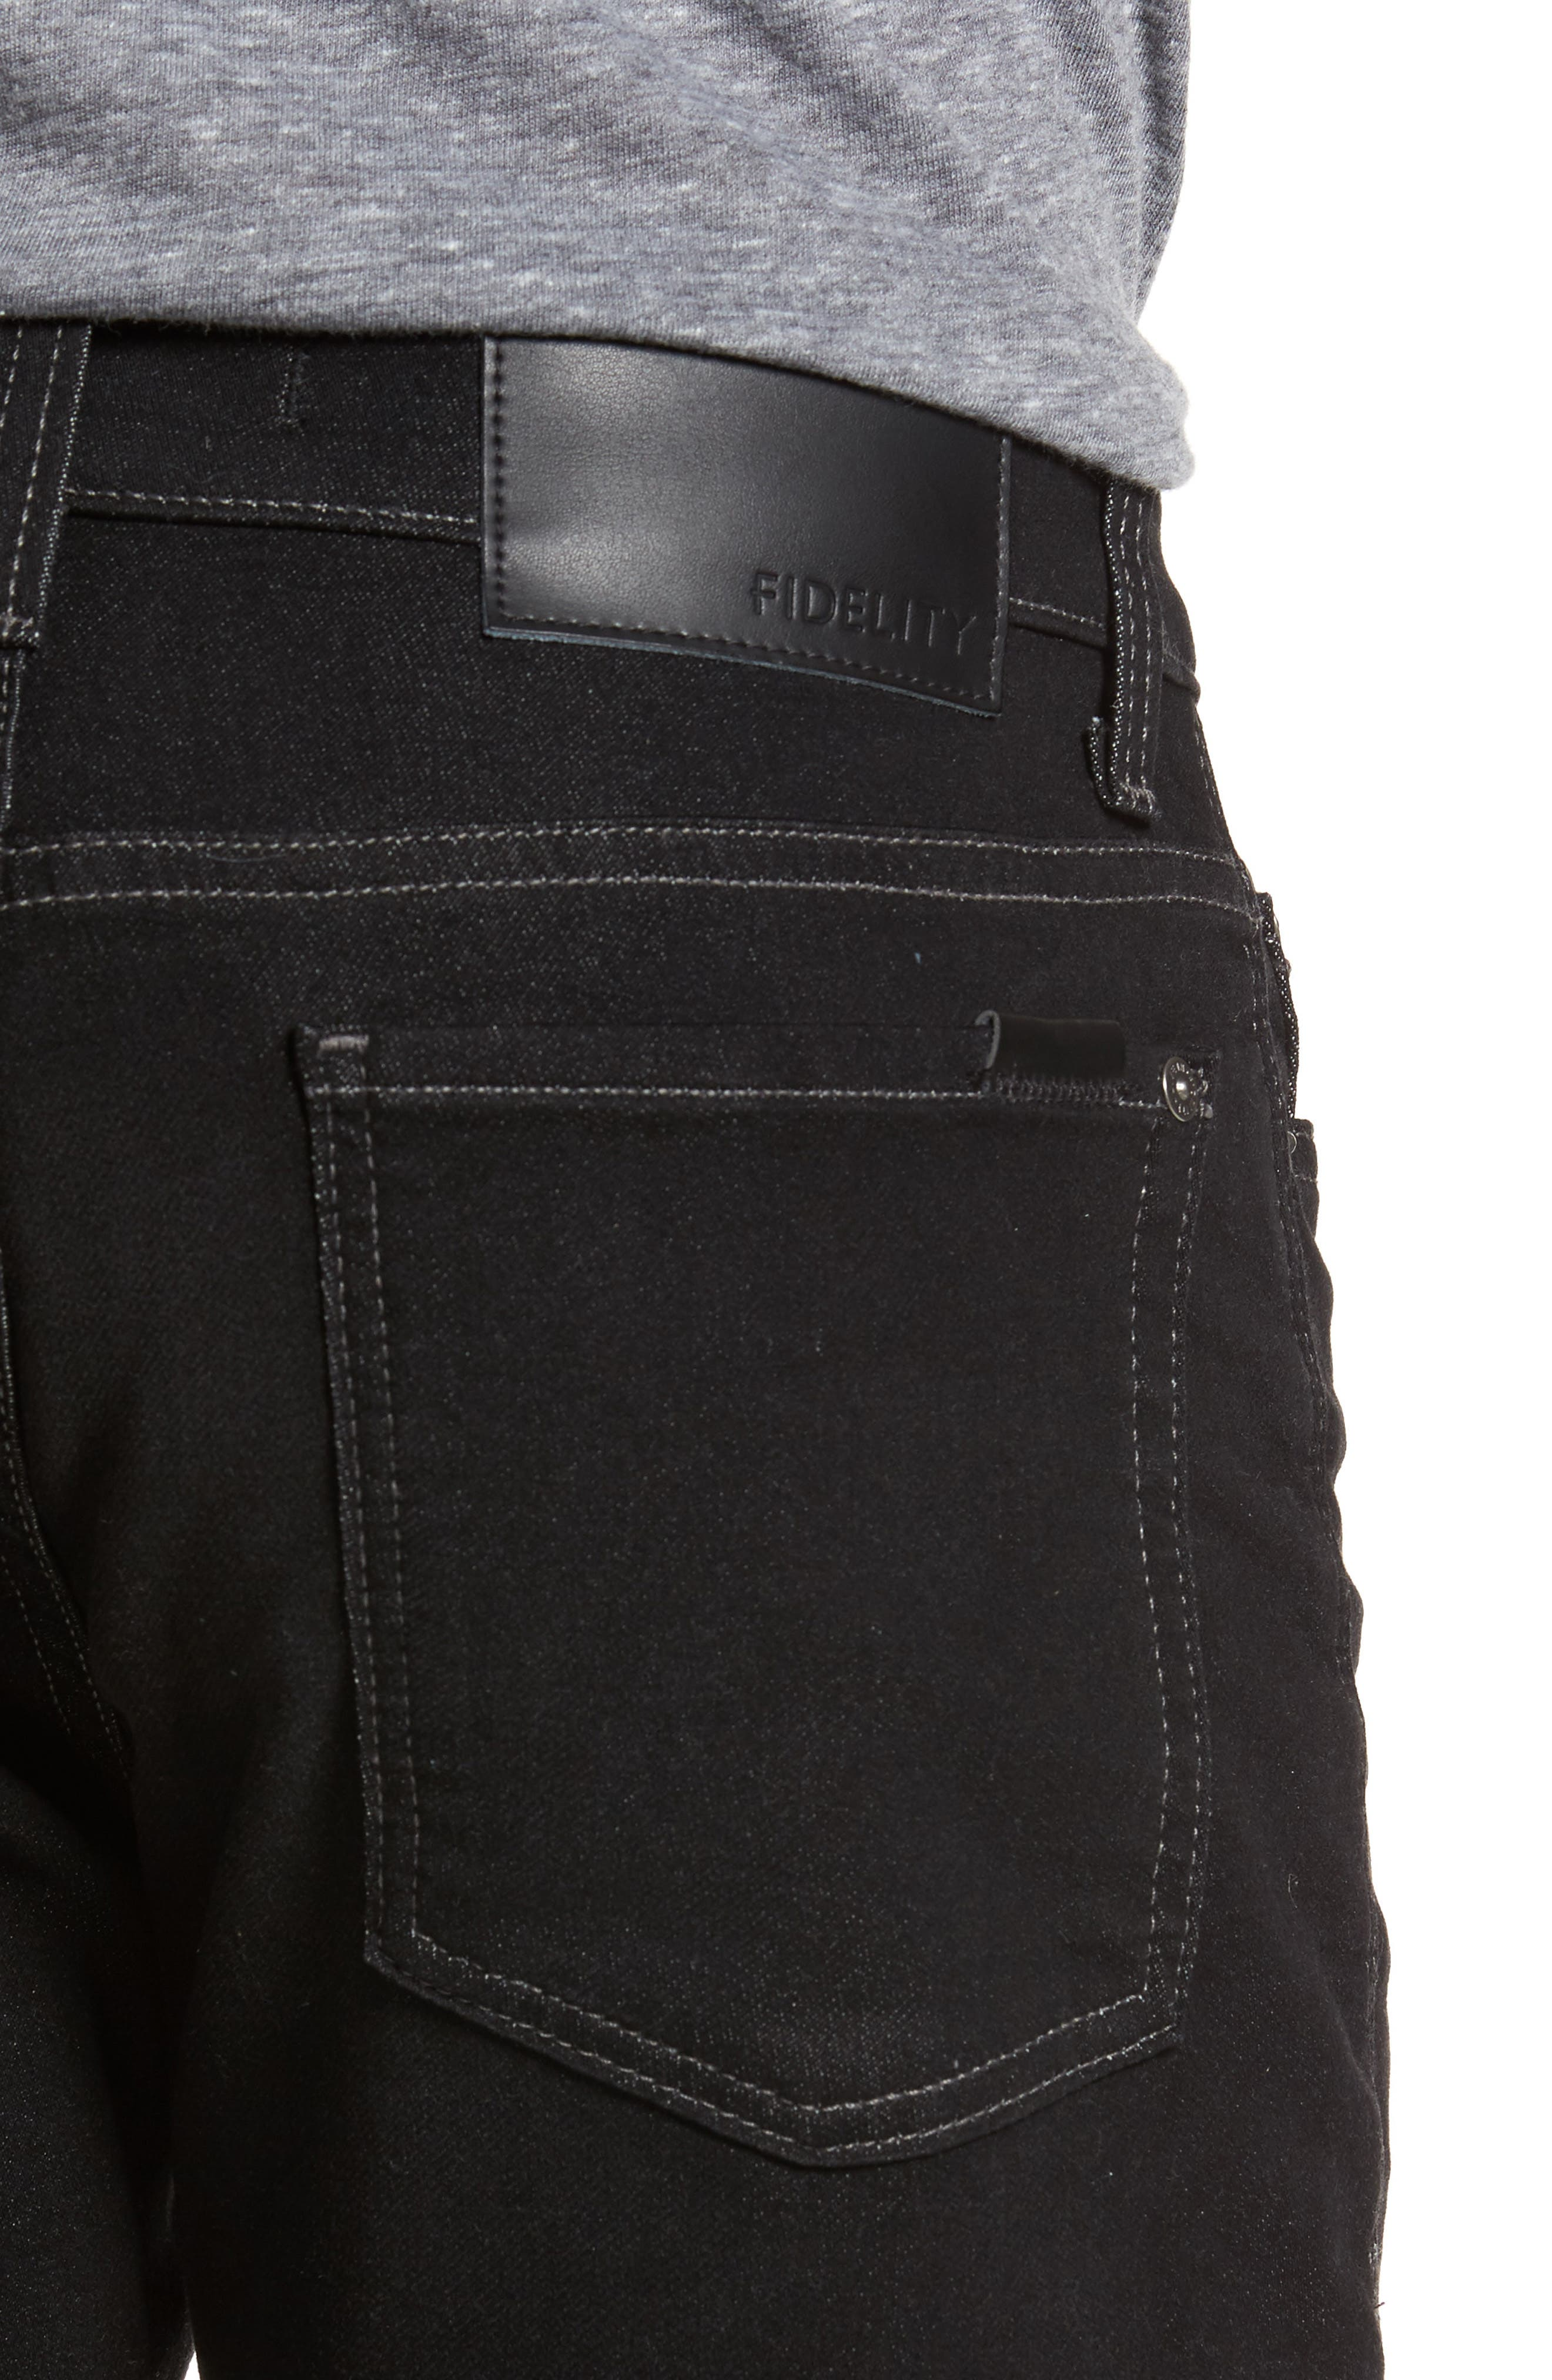 Torino Slim Fit Jeans,                             Alternate thumbnail 4, color,                             001